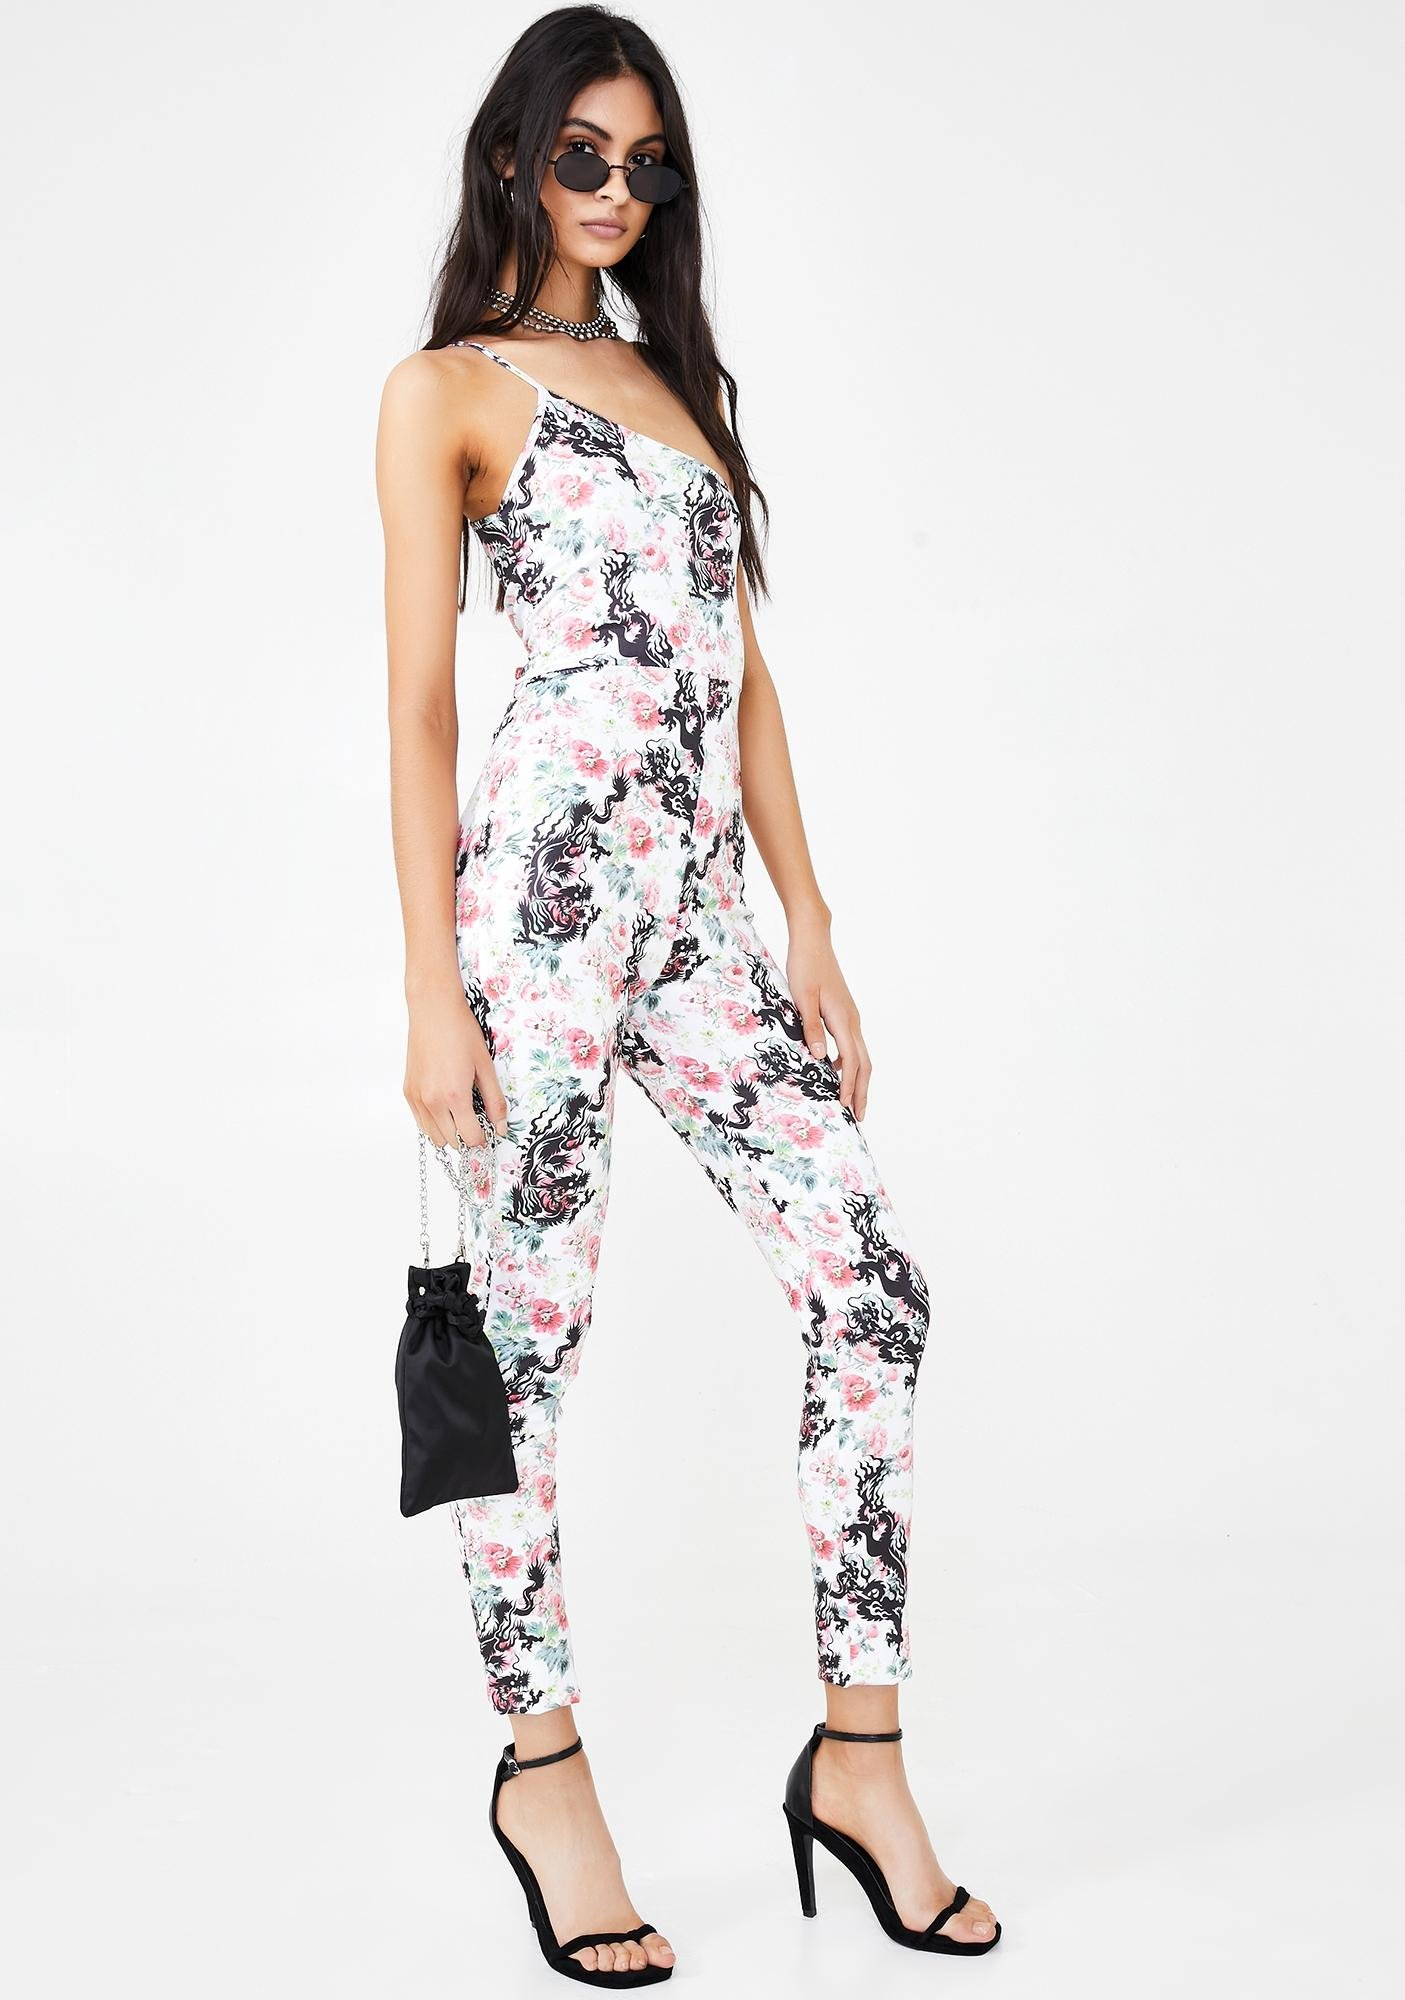 NEW GIRL ORDER Floral Cami Unitard